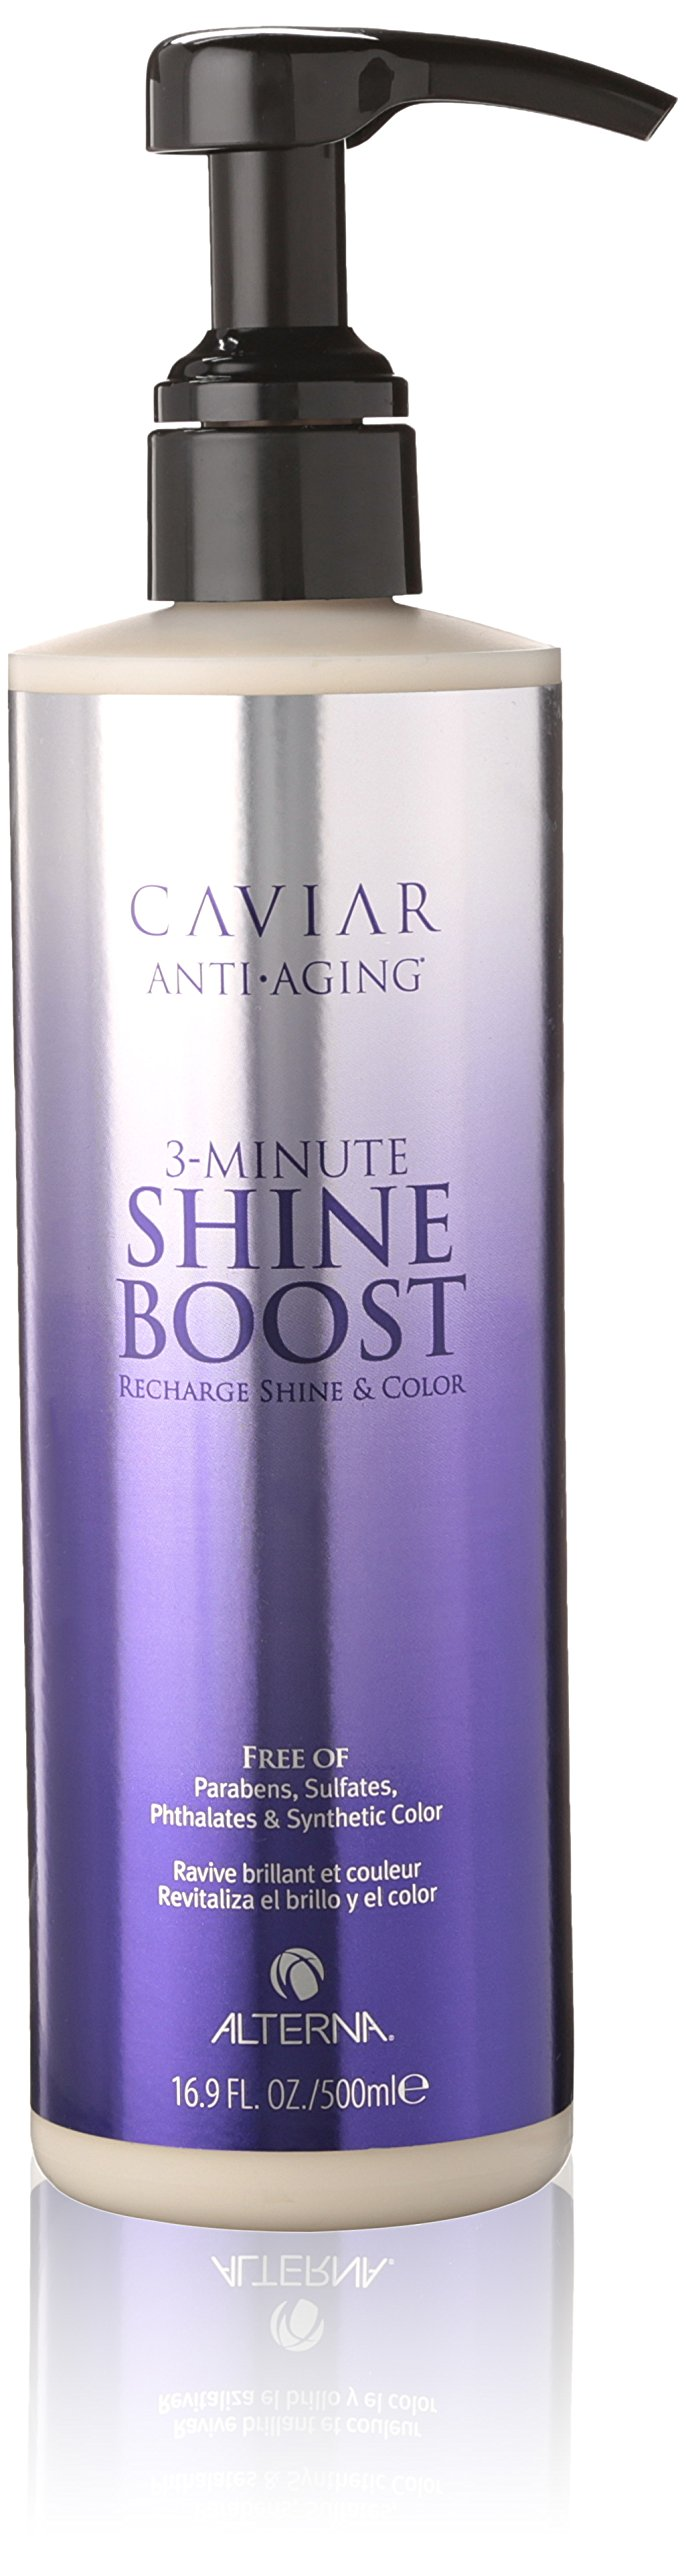 Alterna Caviar Anti Aging 3 minute Shine Boost 16.9 oz